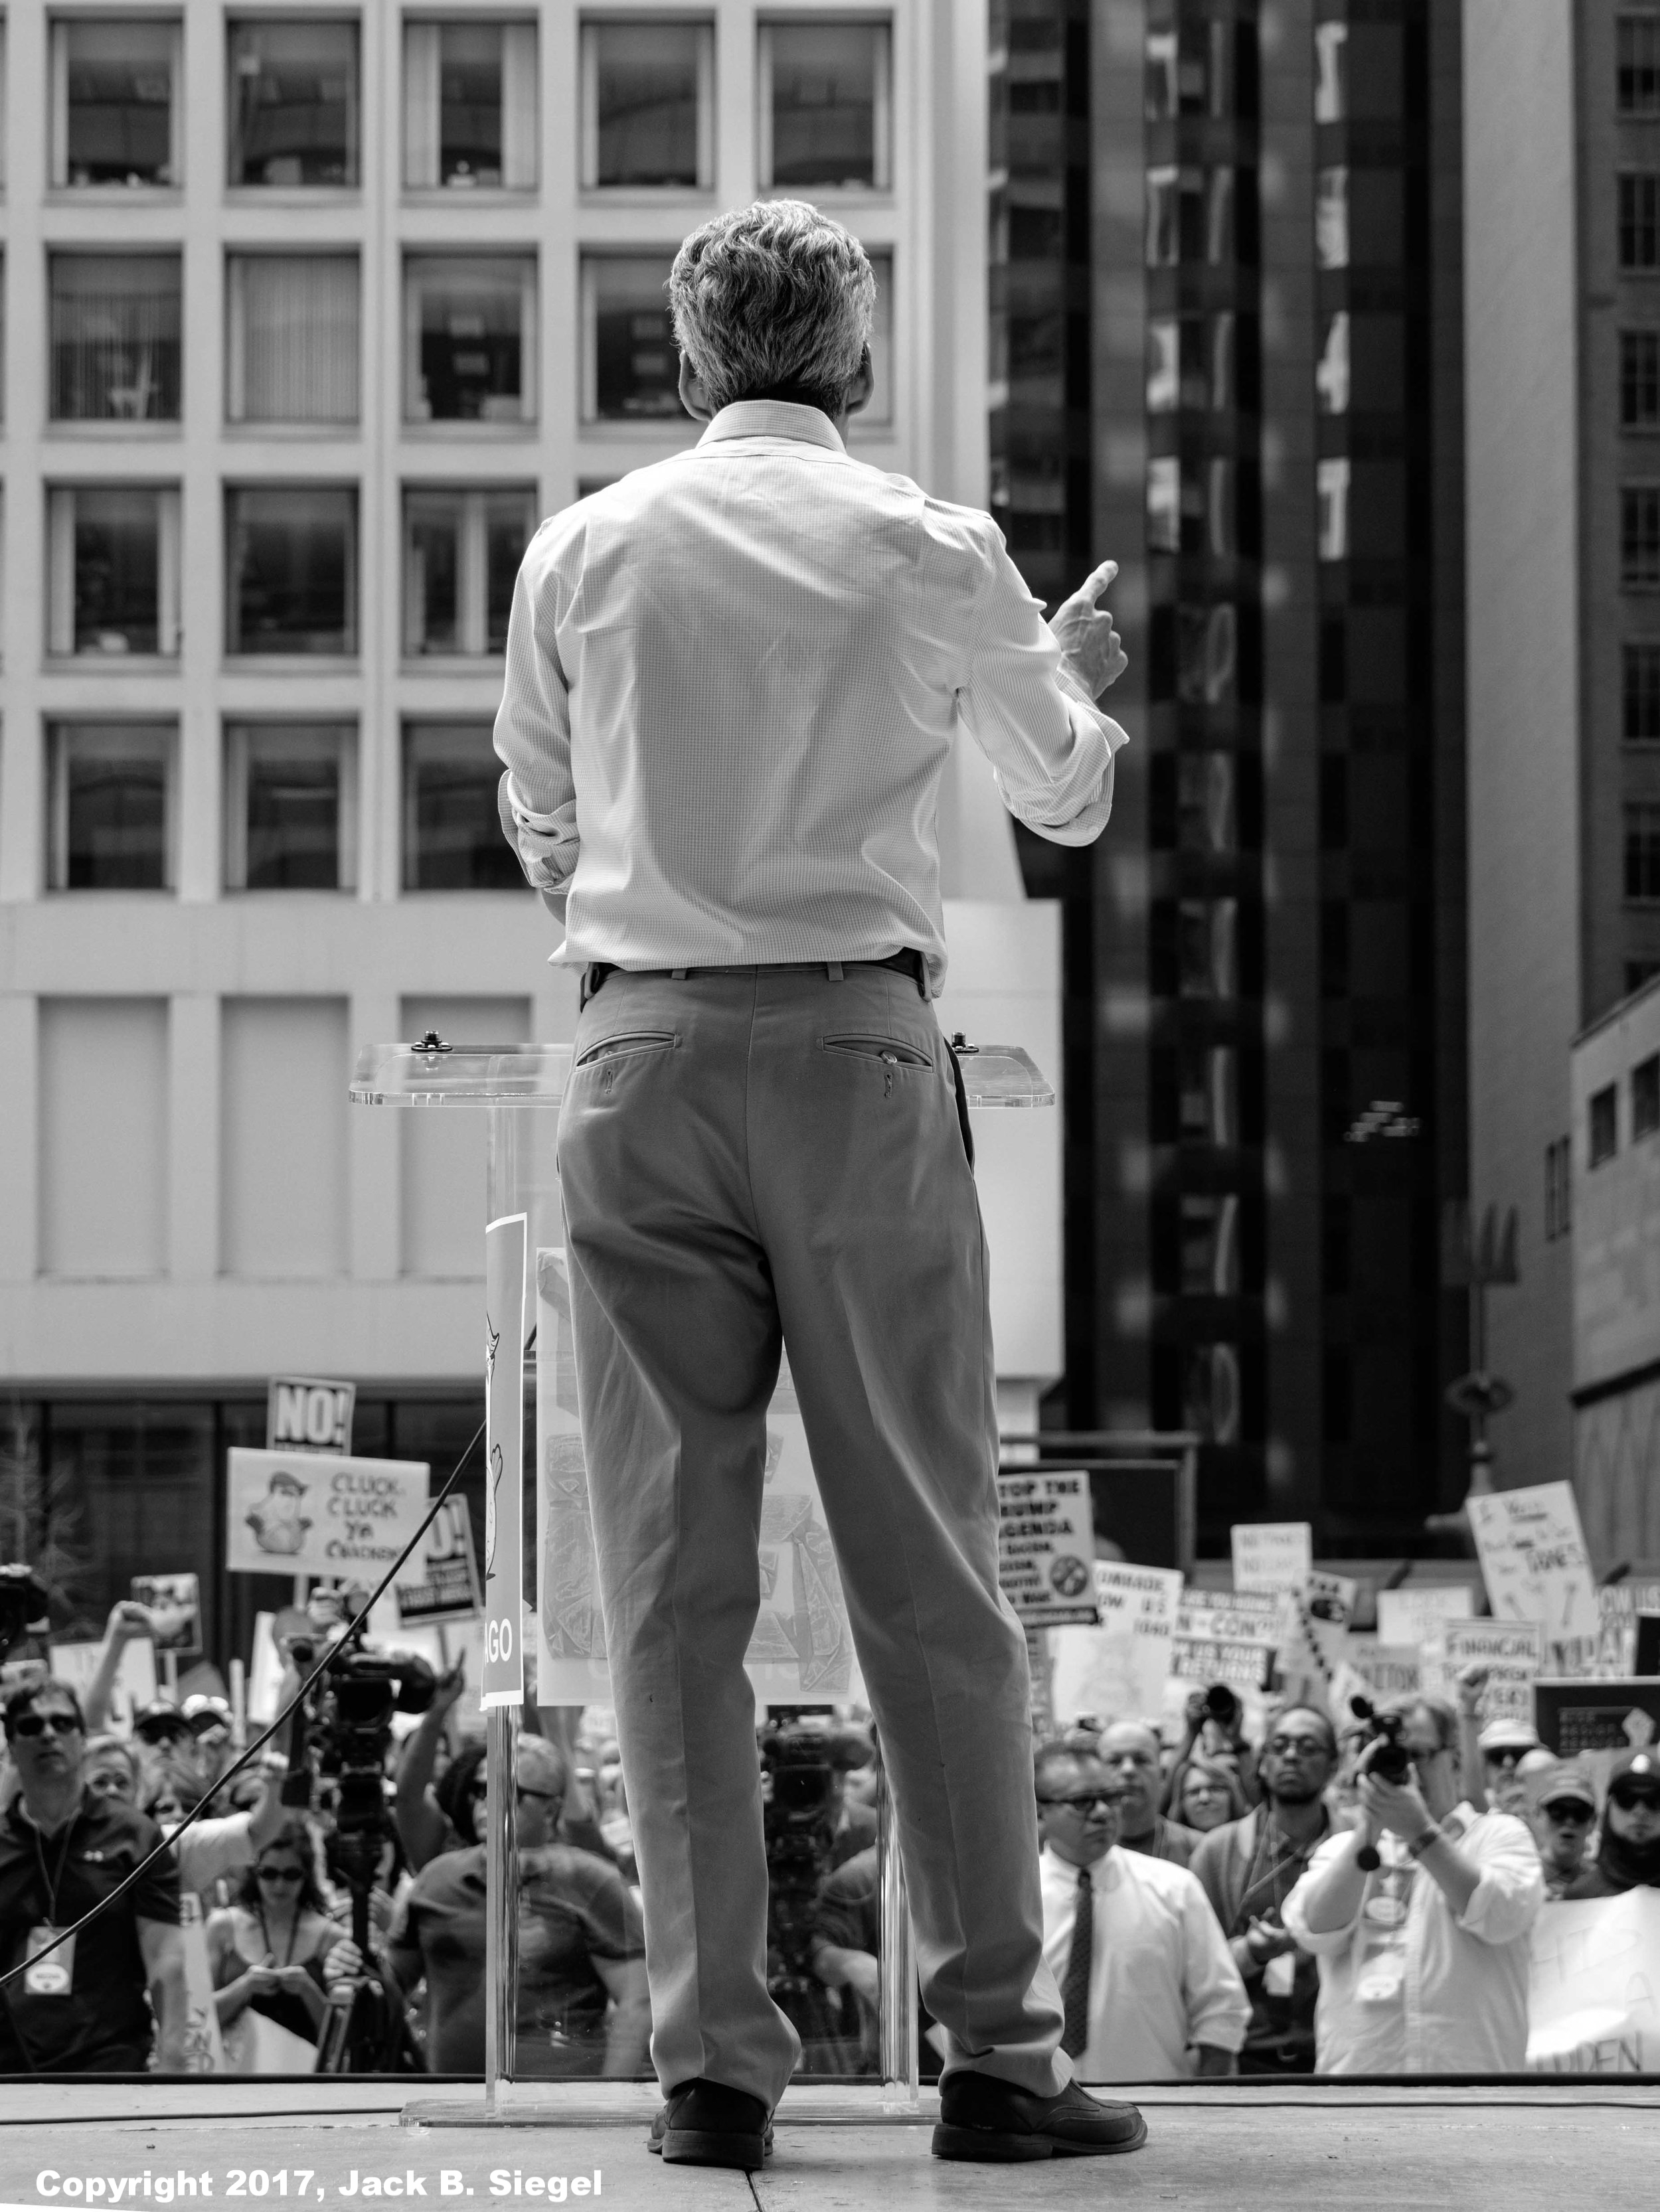 Speaking to the Crowd